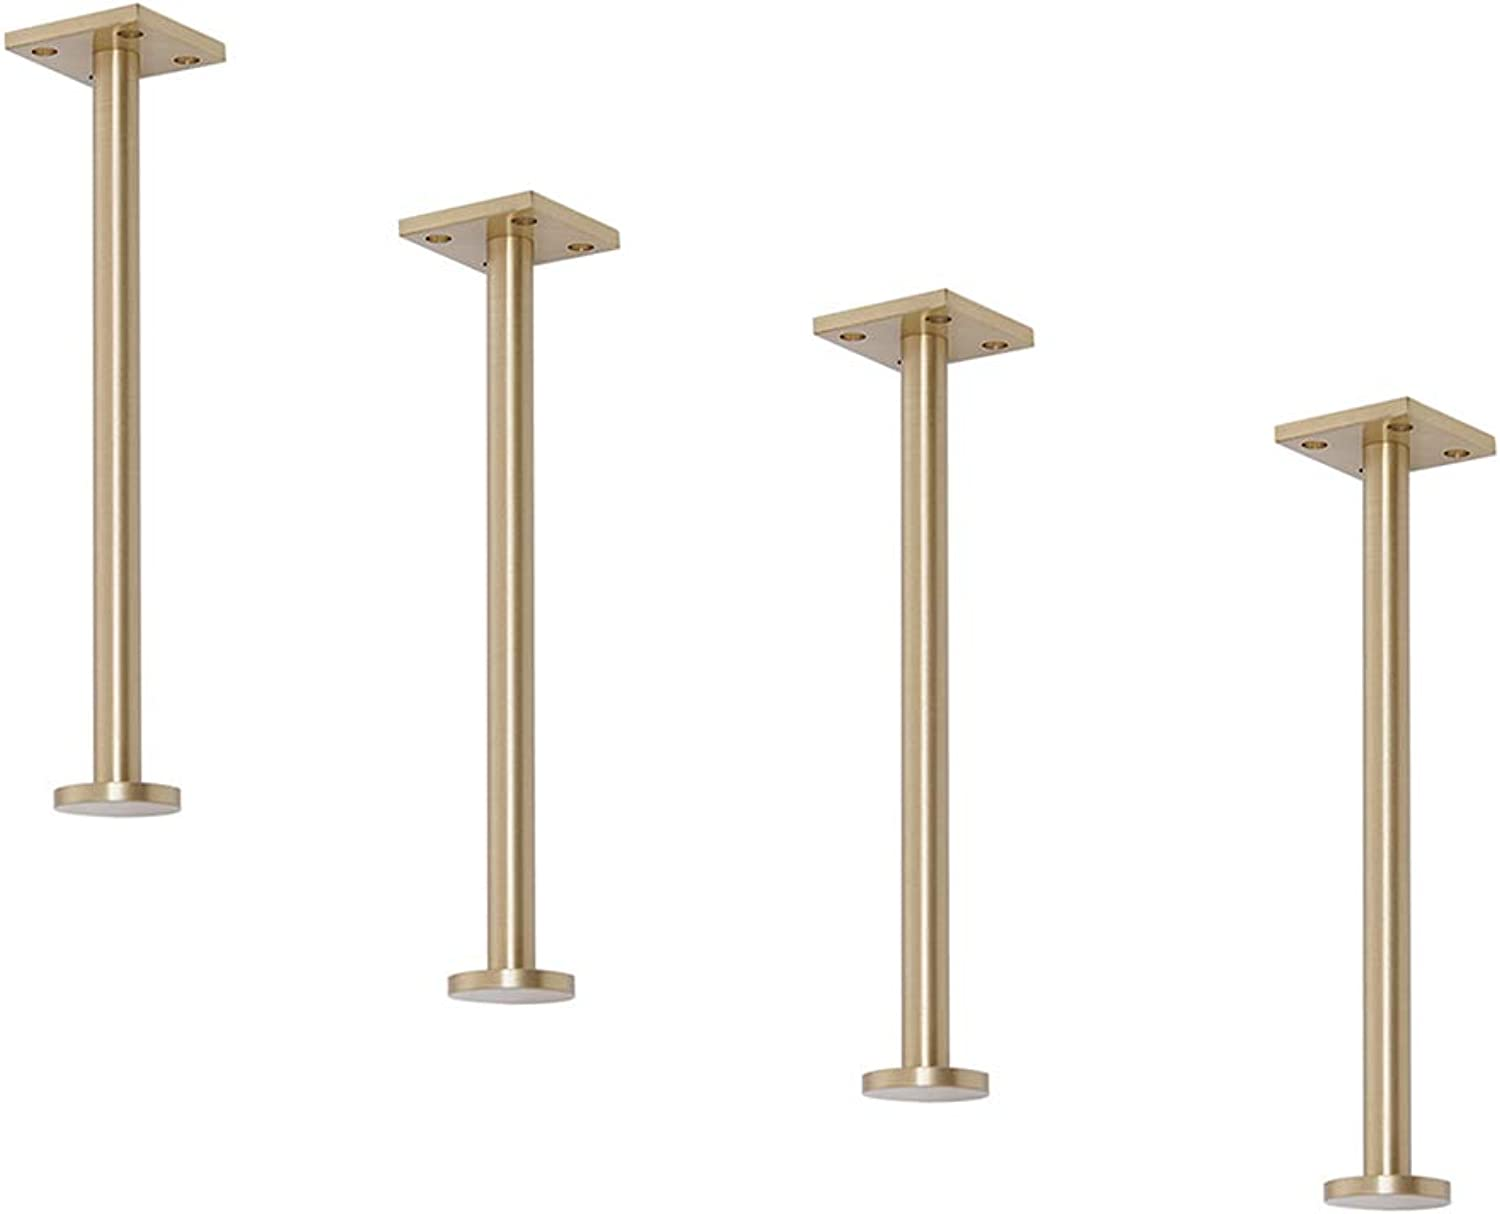 Brass Brushed Furniture Legs, Straight Cylindrical Sofa TV Table Support feet, Coffee Table bar Bathroom Cabinet feet, Bearing Weight 400kg, 4 Sets, 15 20cm